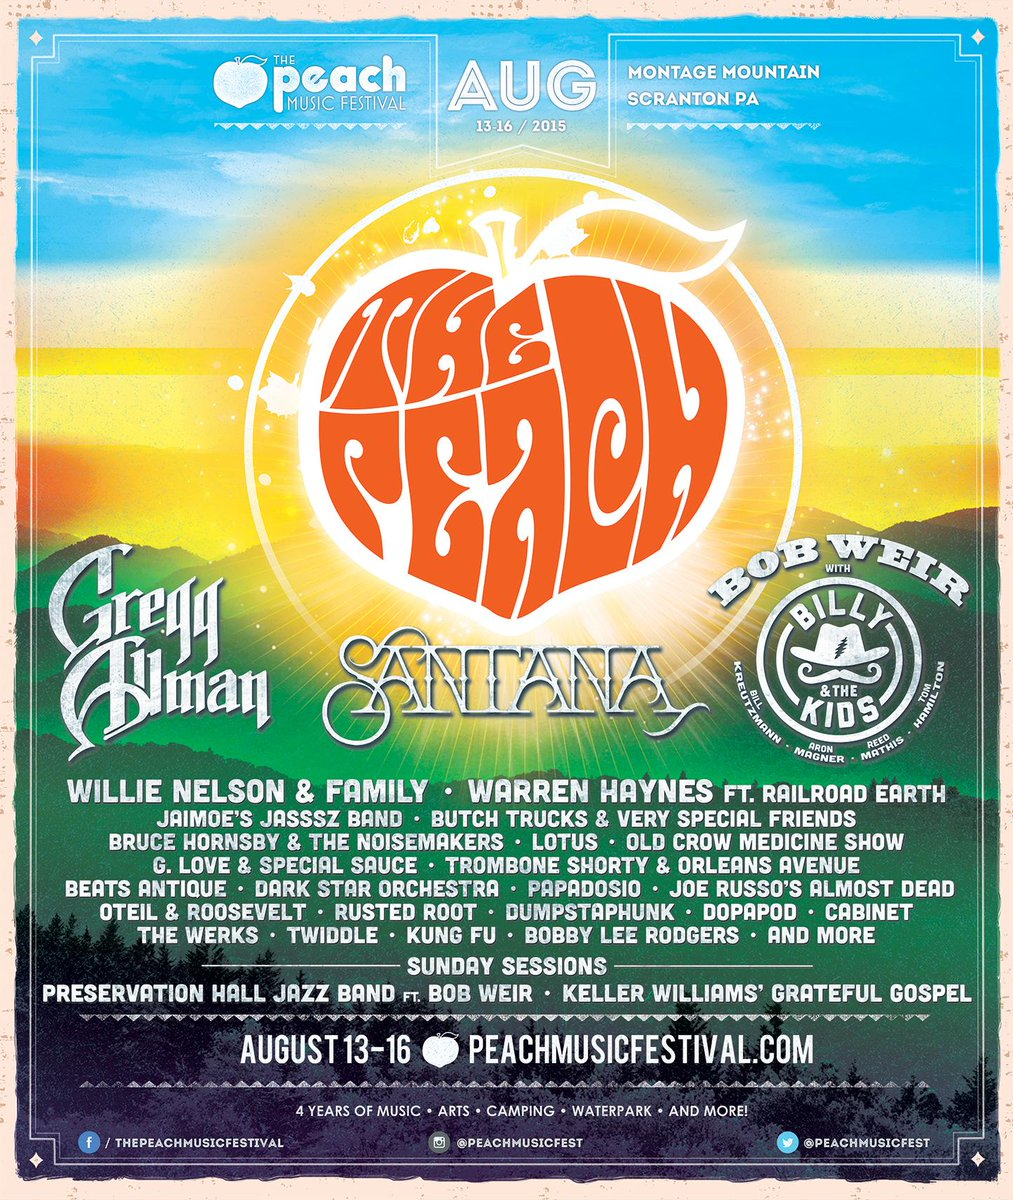 The Peach Music Festival Scranton PA 2015